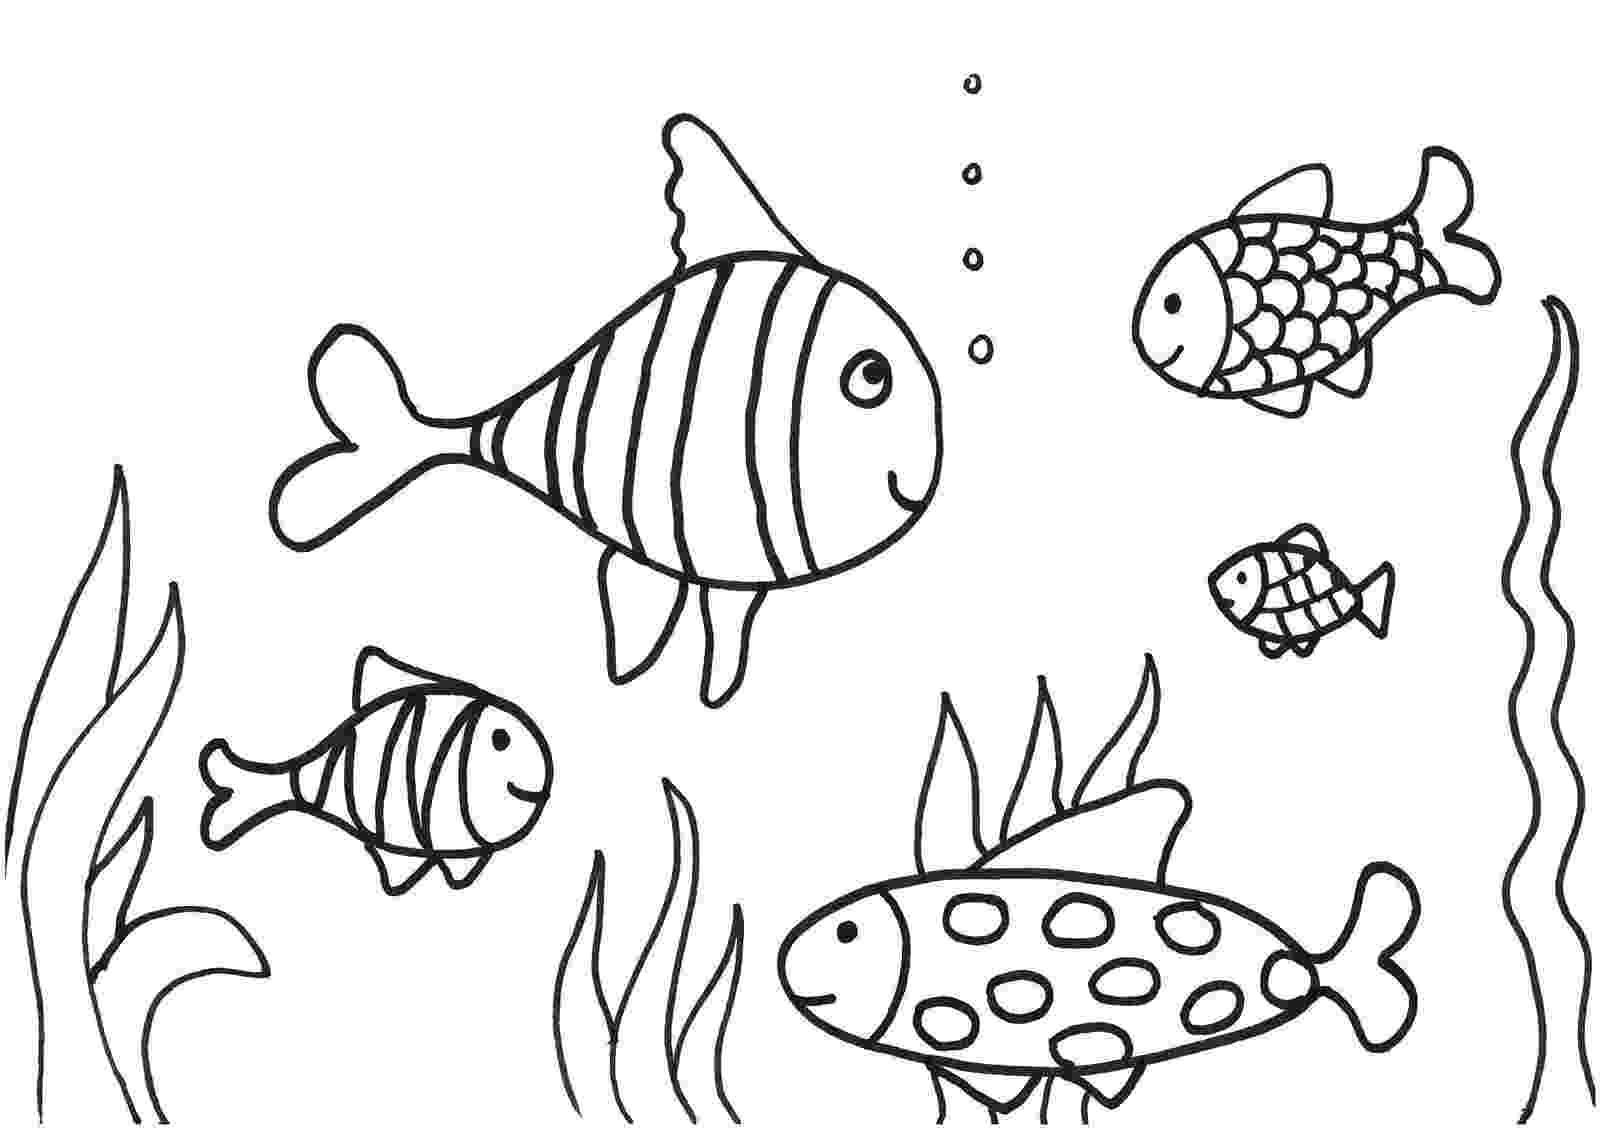 fish coloring page fish coloring pages team colors fish coloring page